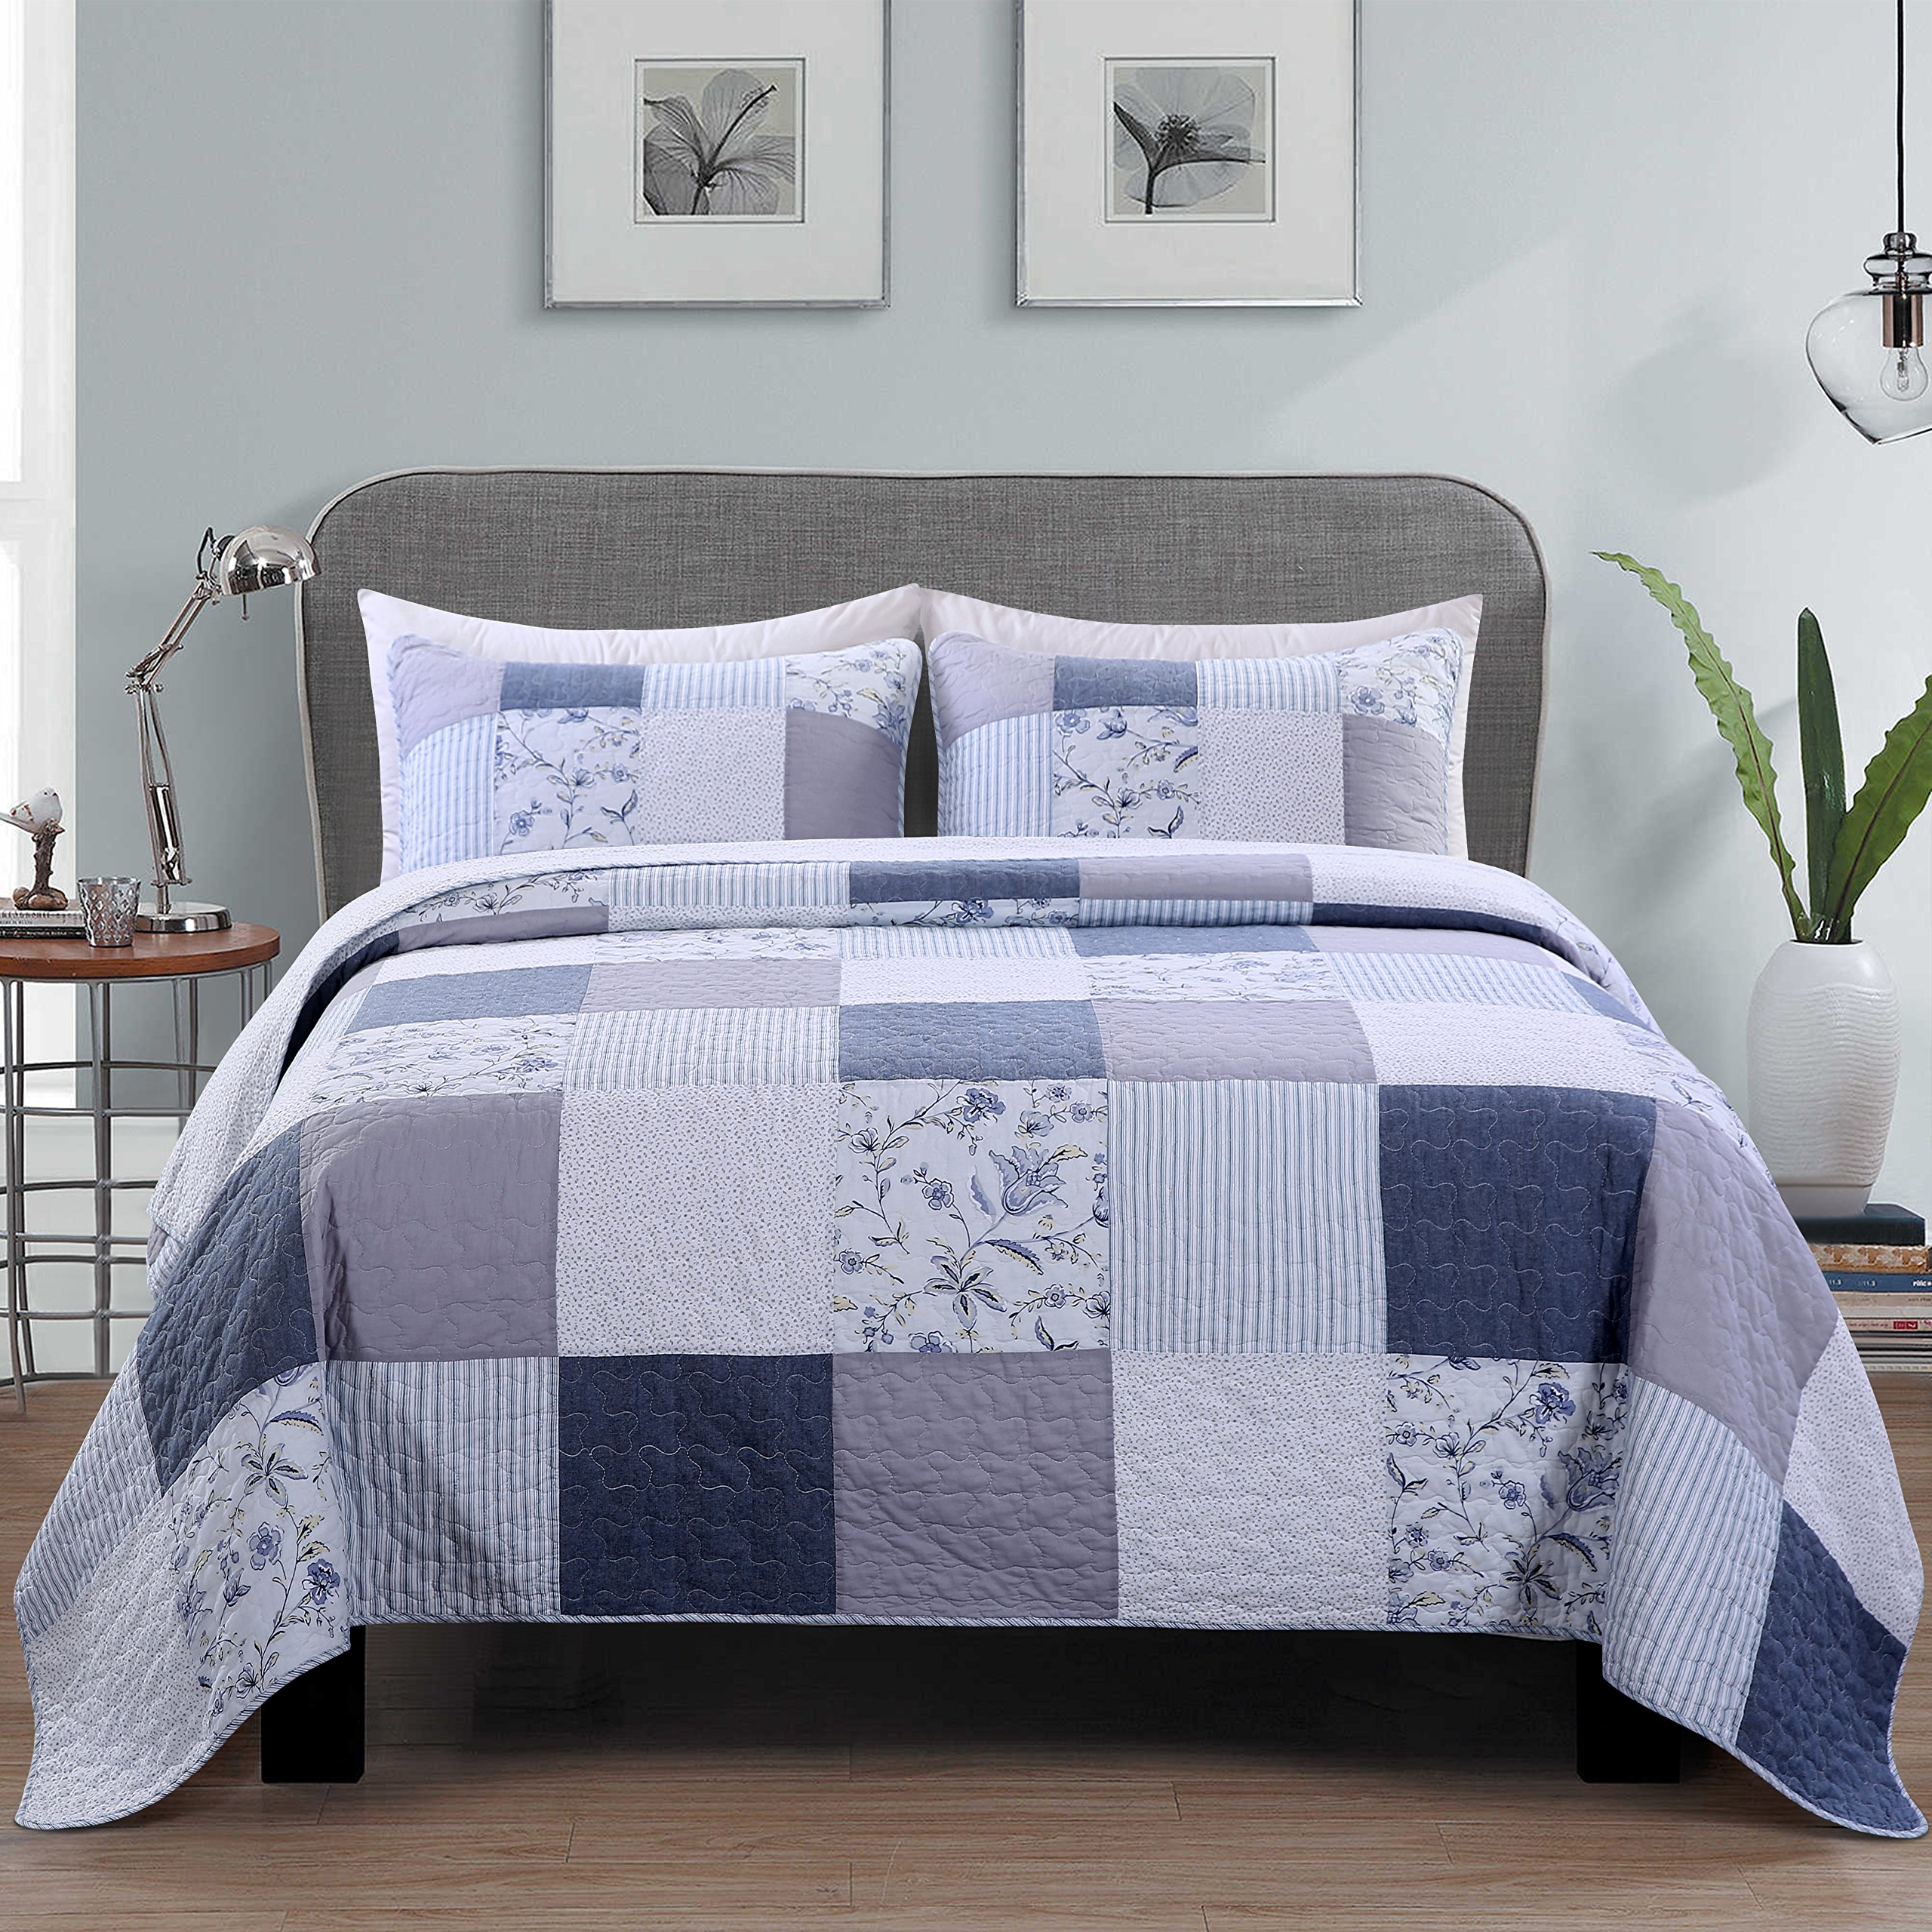 SLPR Coastal Dream 3-Piece Real Patchwork Cotton Quilt Set (King)   with 2 Shams Pre-Washed Reversible Machine Washable Lightweight Bedspread Coverlet